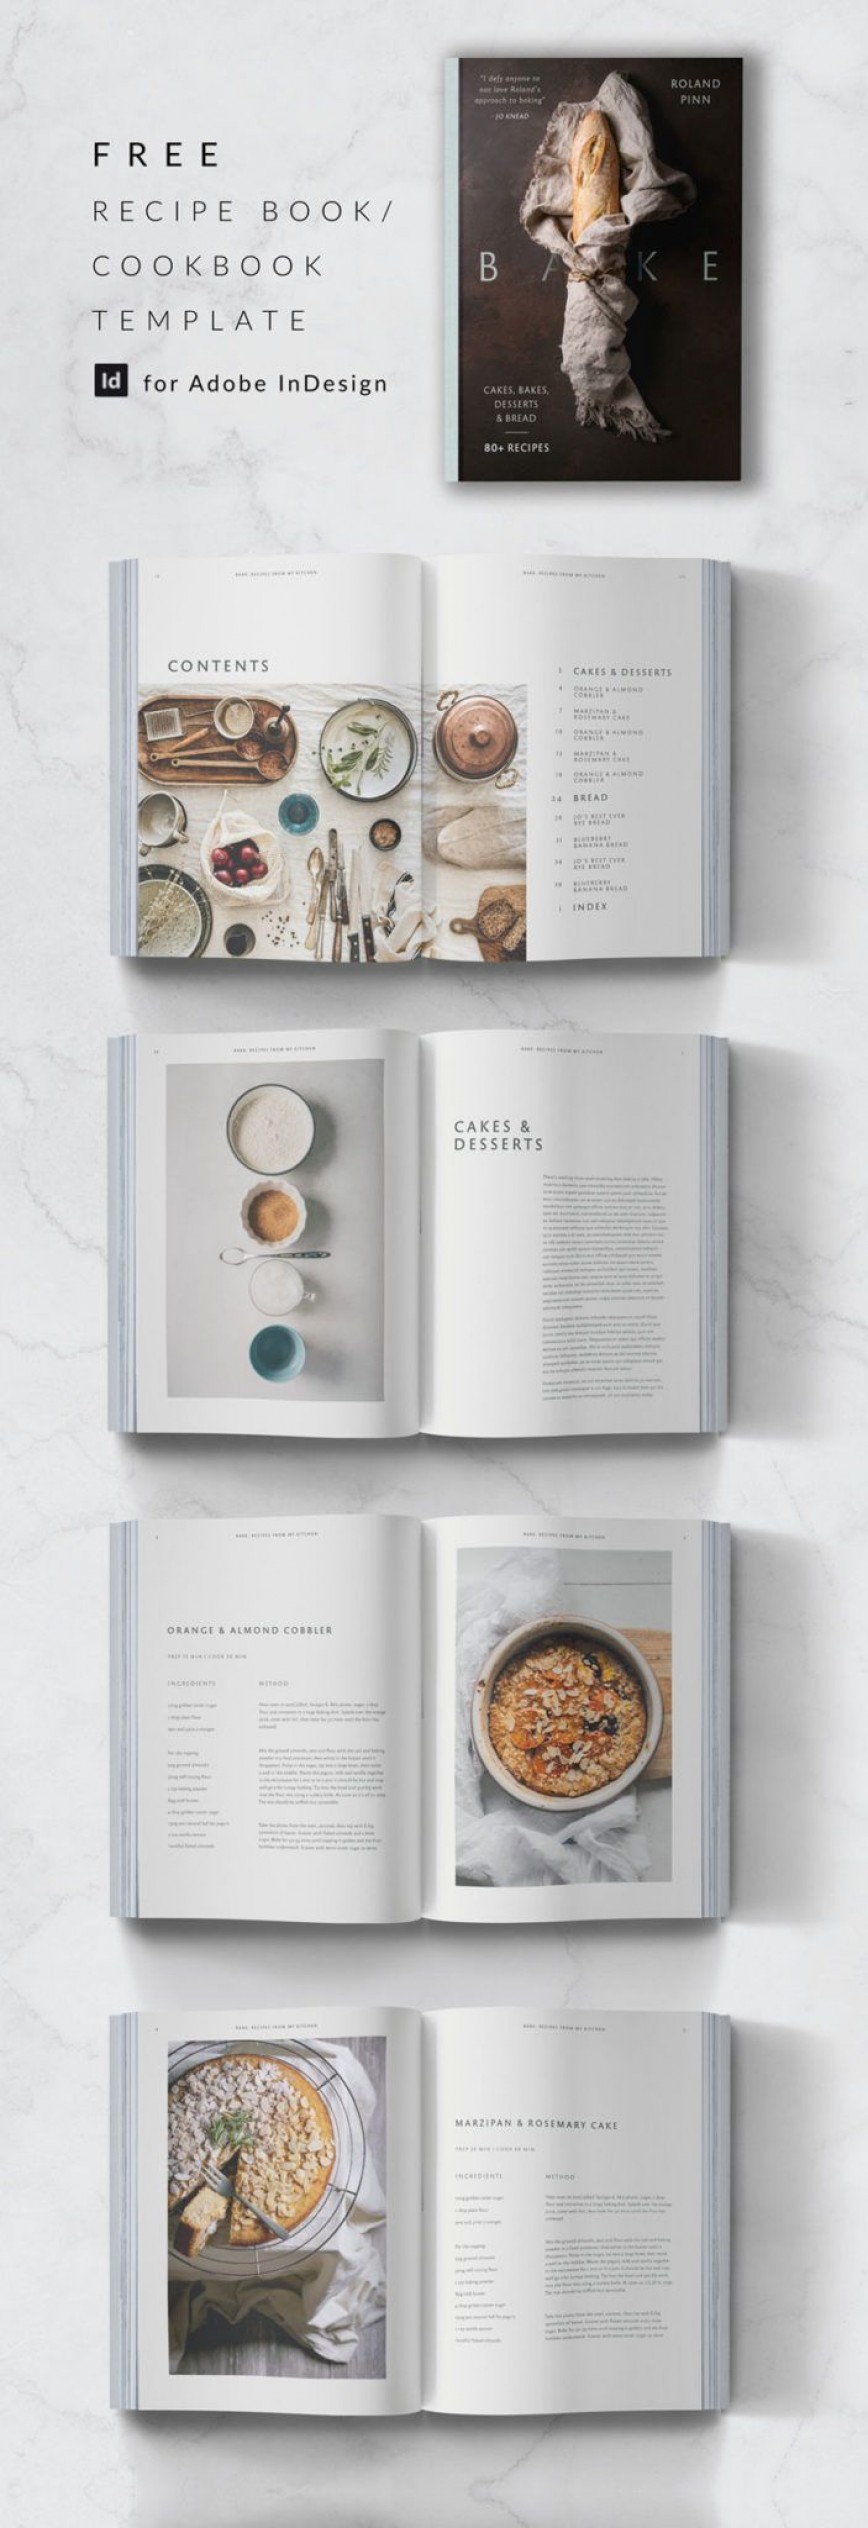 011 Remarkable Create Your Own Cookbook Free Template Sample 868